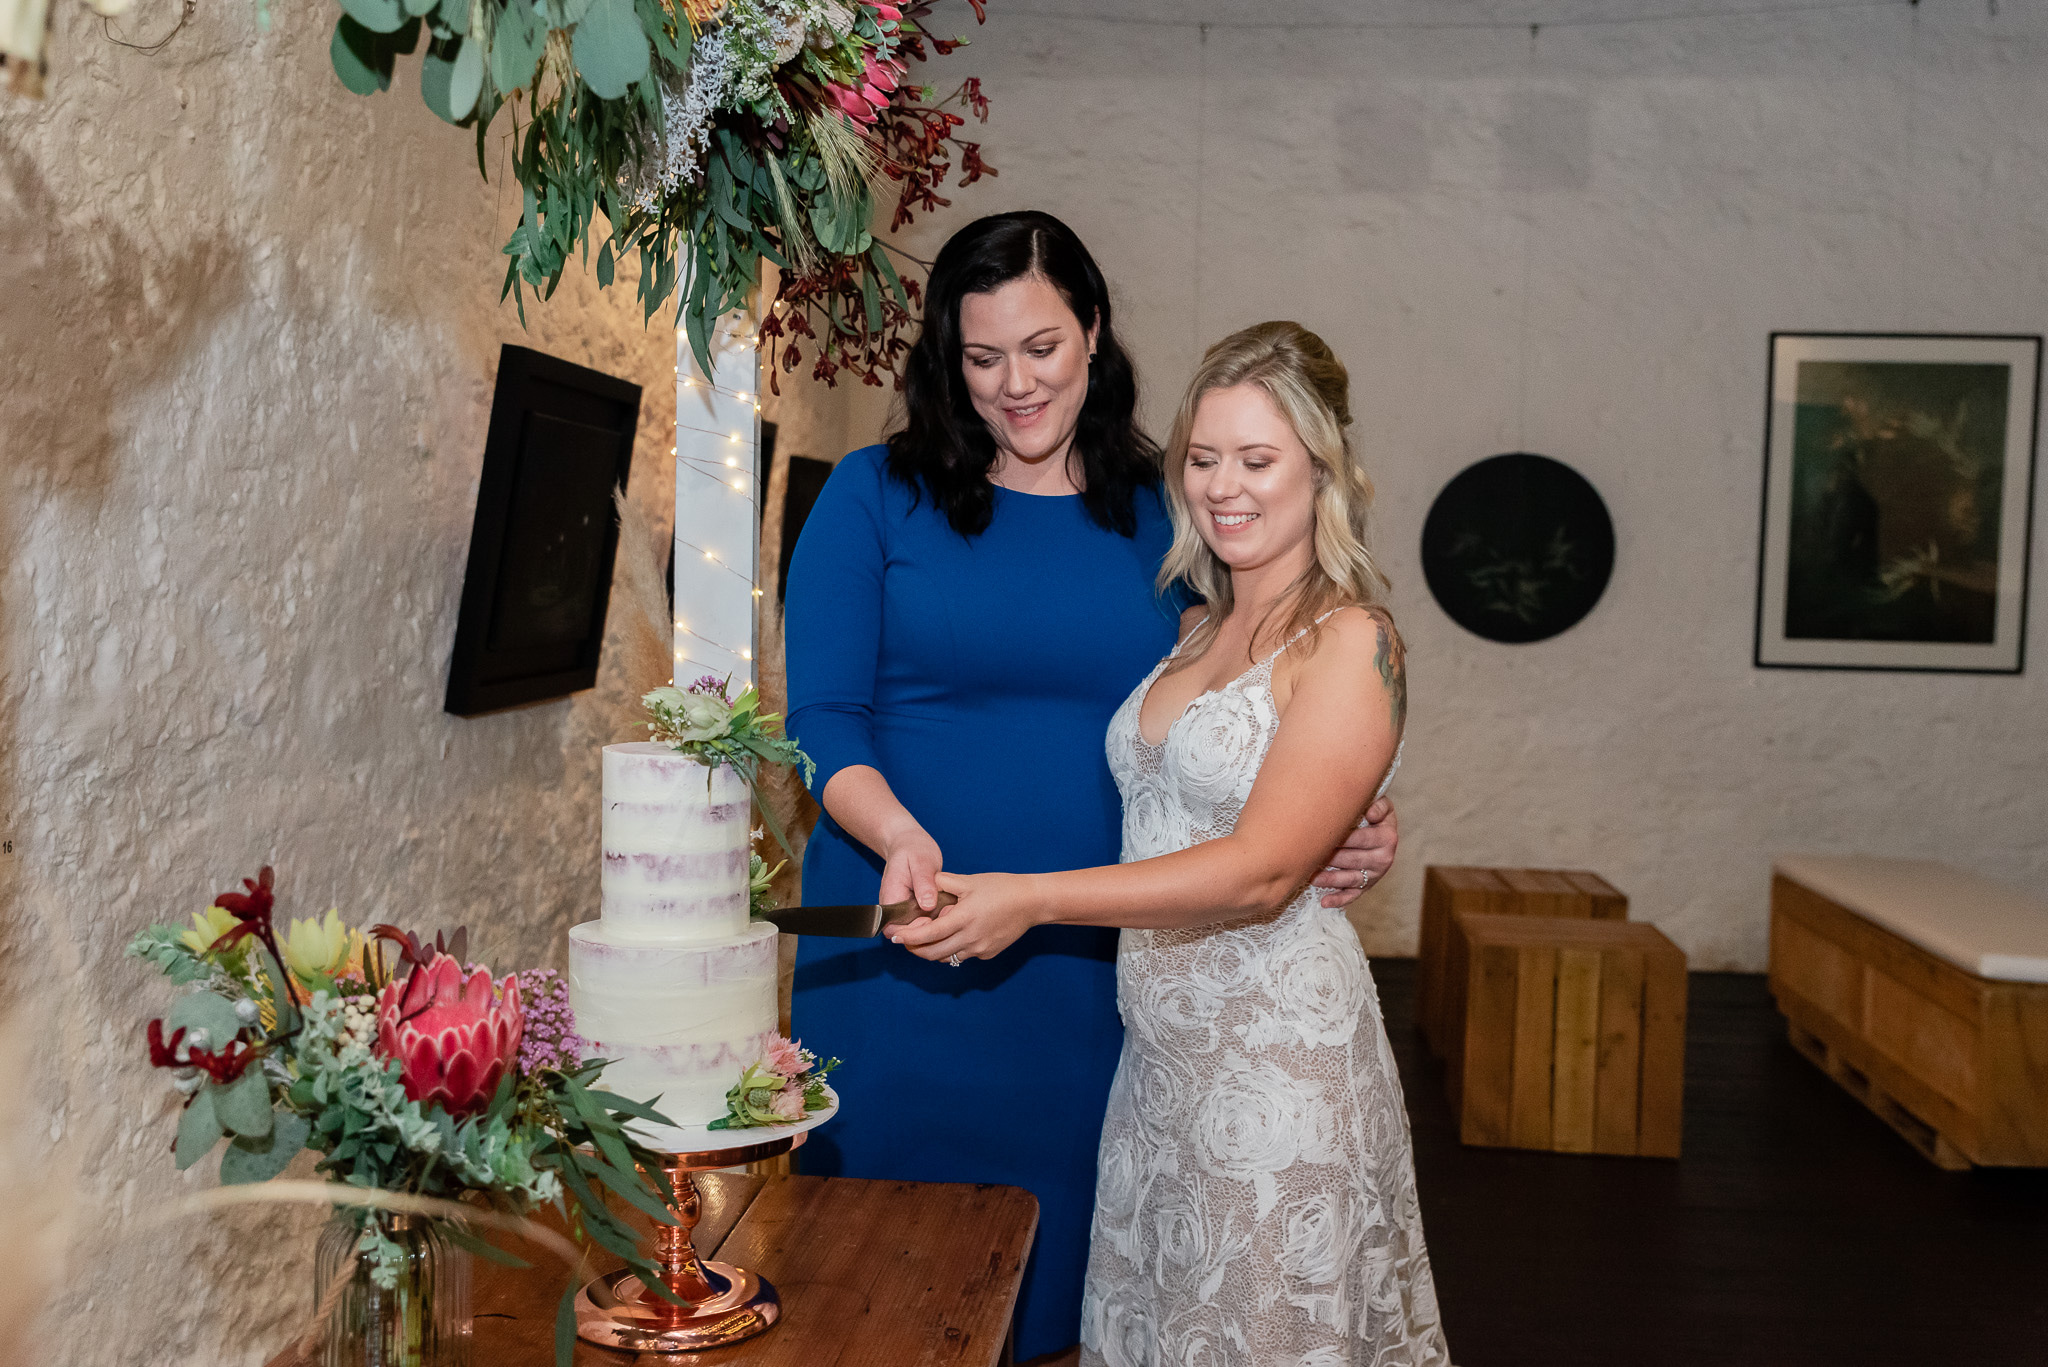 Perth Wedding Bride & Bride Cutting Cake